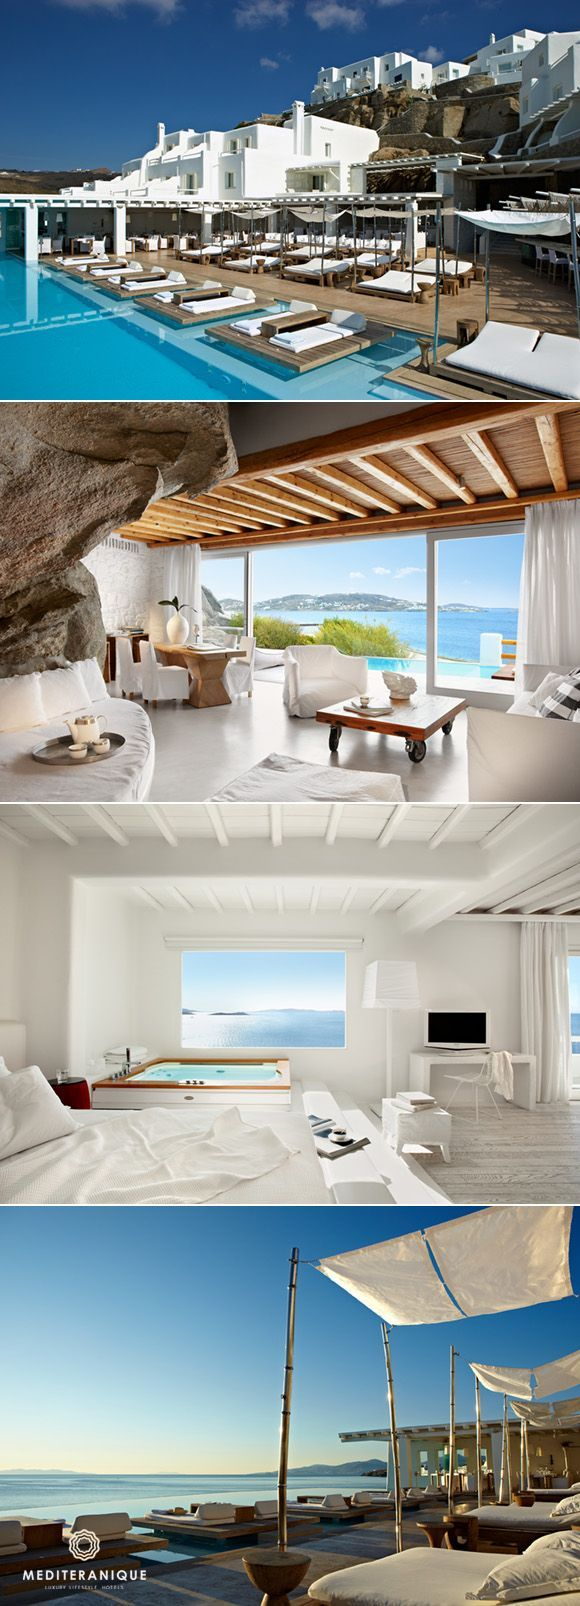 Bora bora french polynesia kivotos hotel mykonos the caves hotel - 5 Incredible Luxury Boutique Hotels In Greece